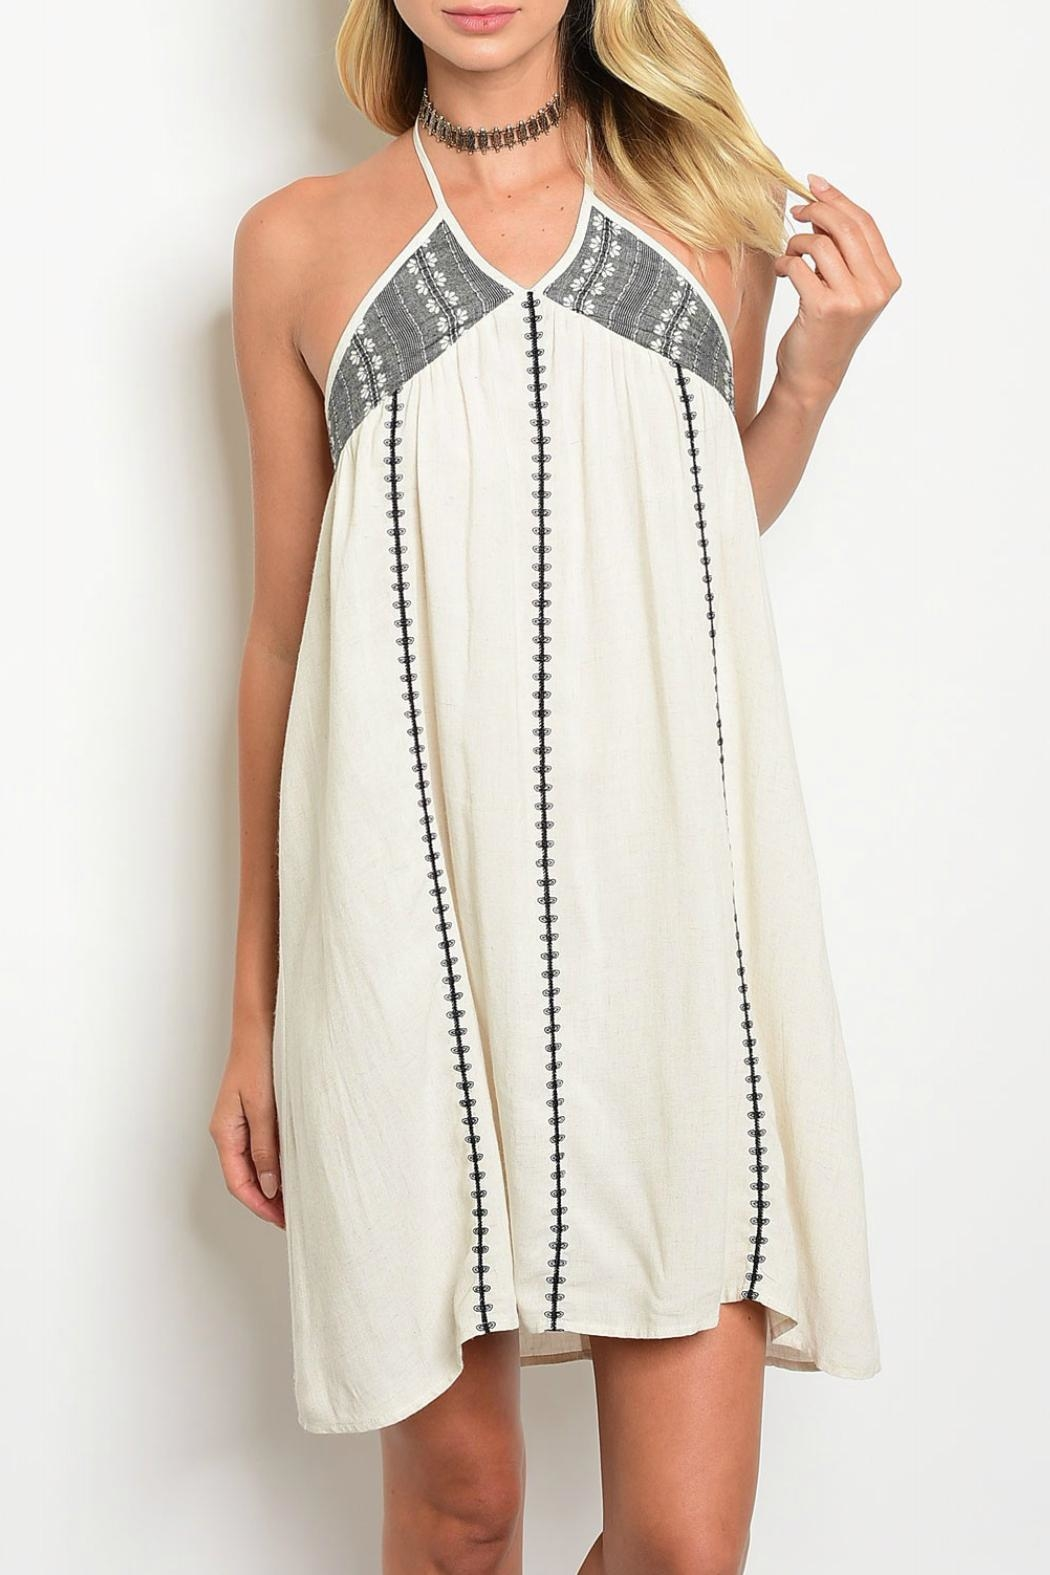 Illa Illa Skye Halter Dress - Front Cropped Image